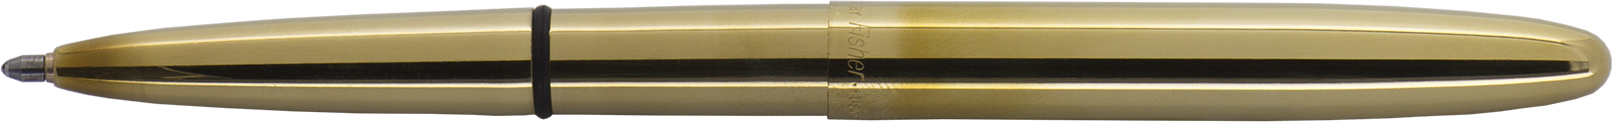 400-RAW - FISHER Raw Brass Bullet Space Pen, Black Ink, Med. Point Gift Boxed